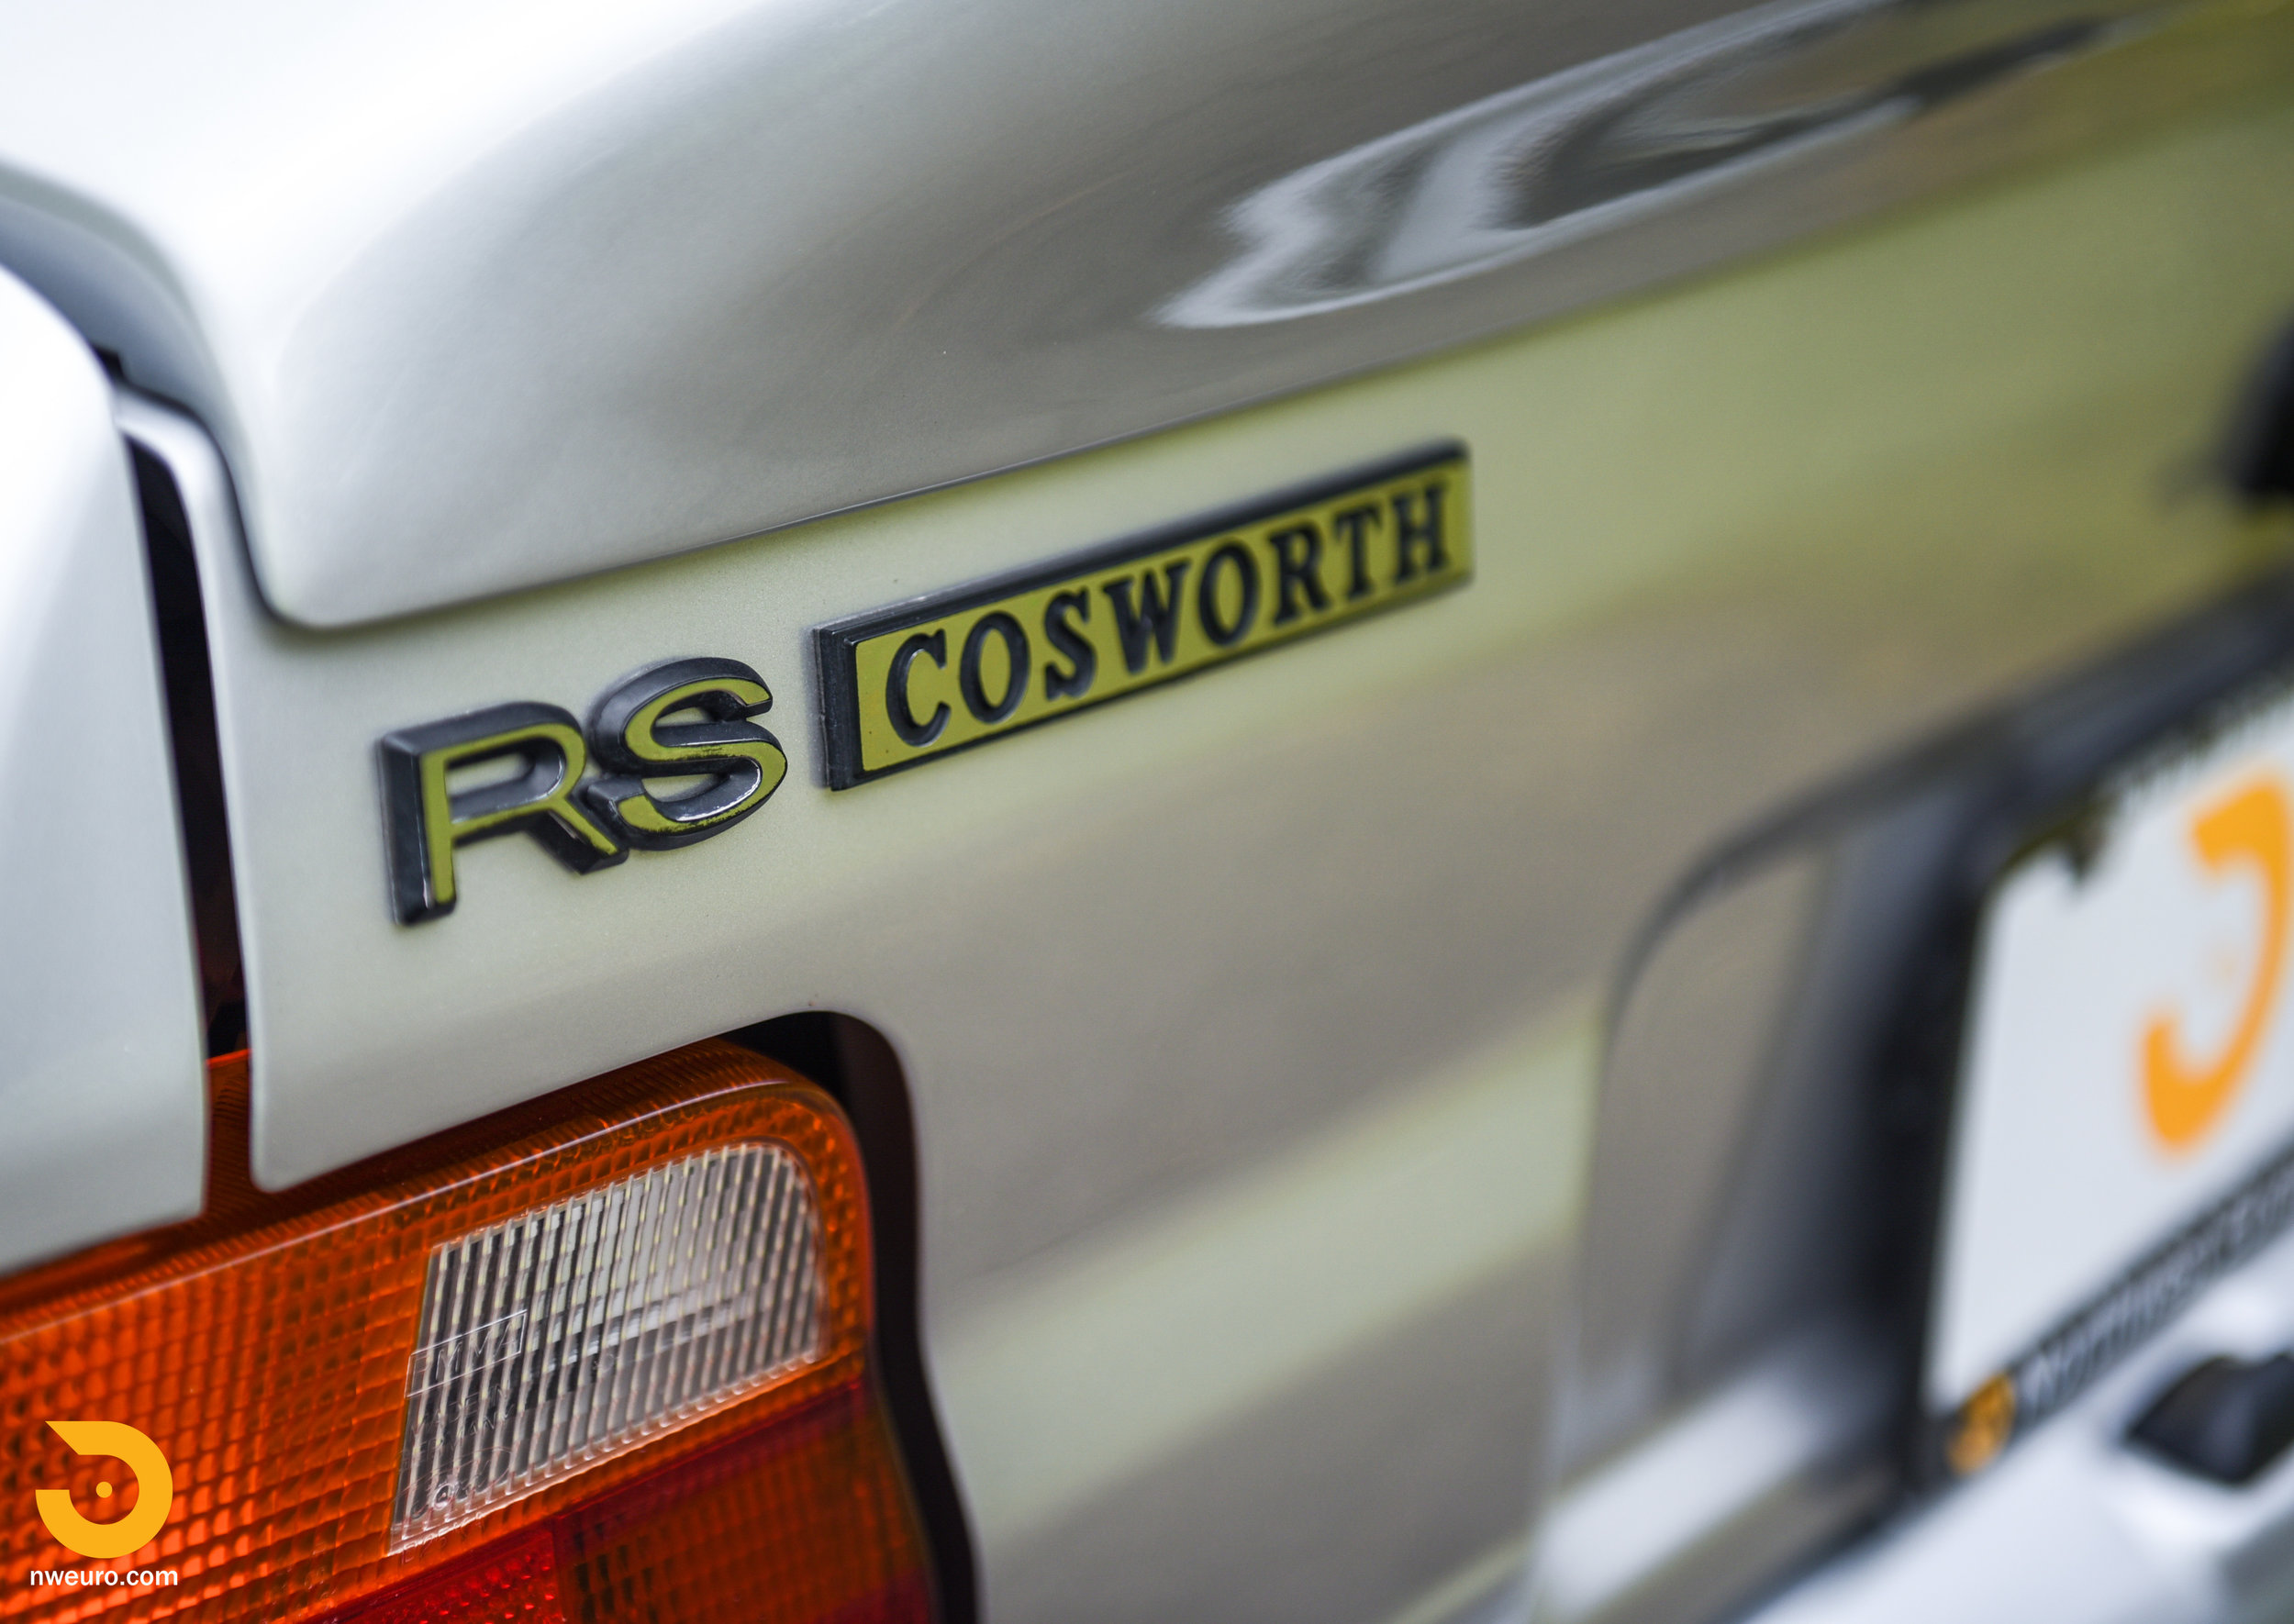 1995 Ford Escort Cosworth RS Silver-11.jpg